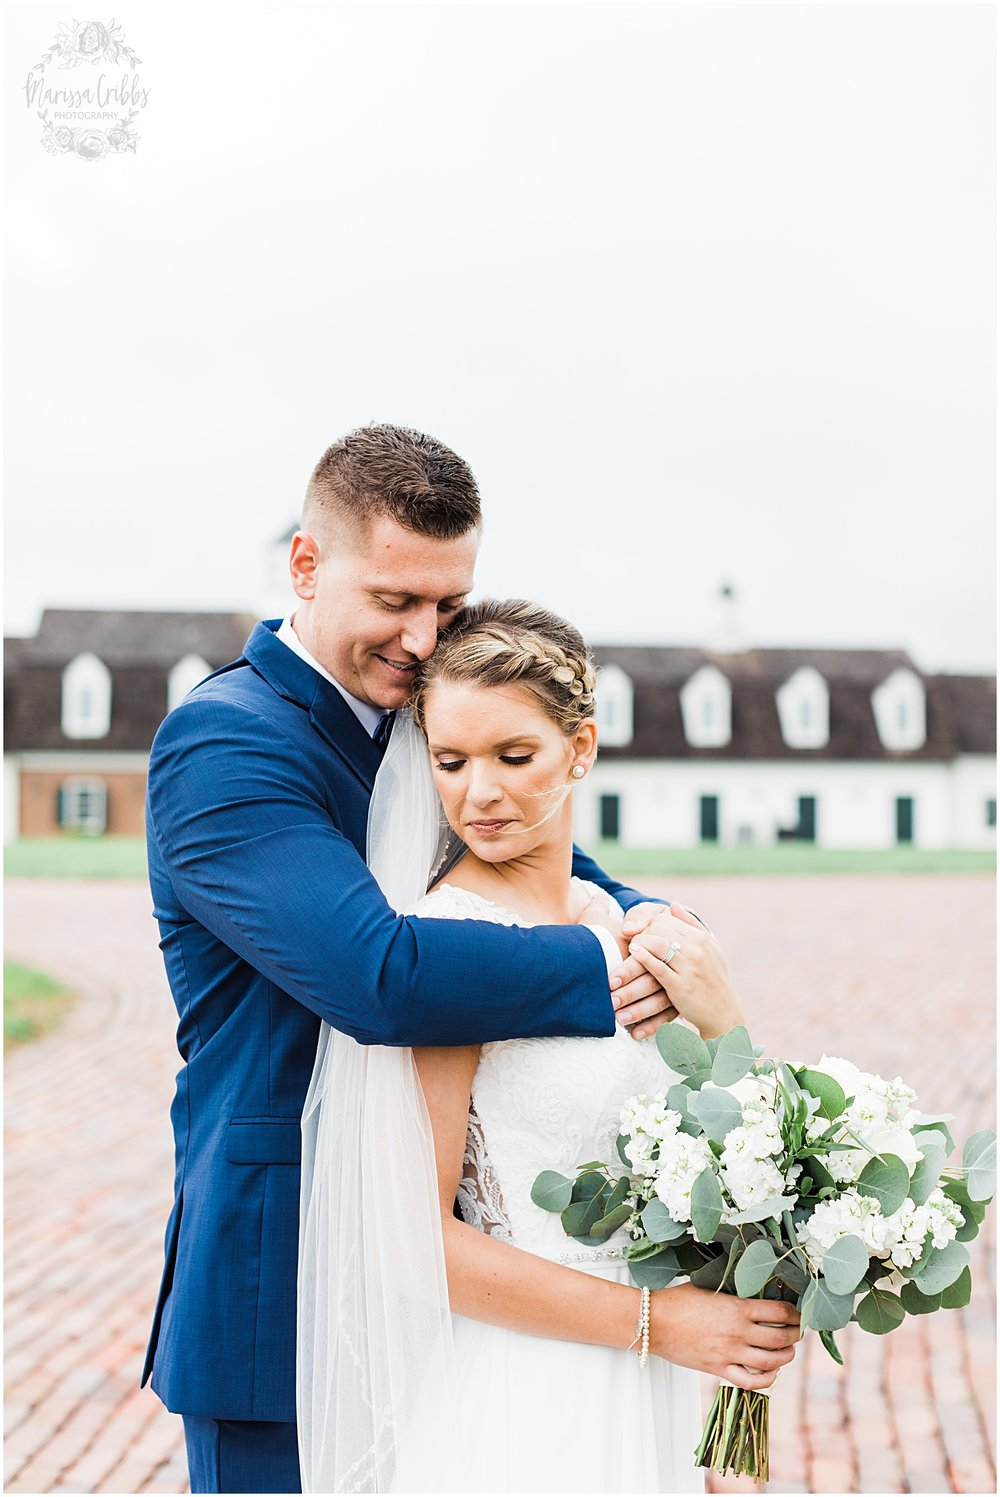 ROUNKLES WEDDING | MARISSA CRIBBS PHOTOGRAPHY | MILDALE FARM_6122.jpg